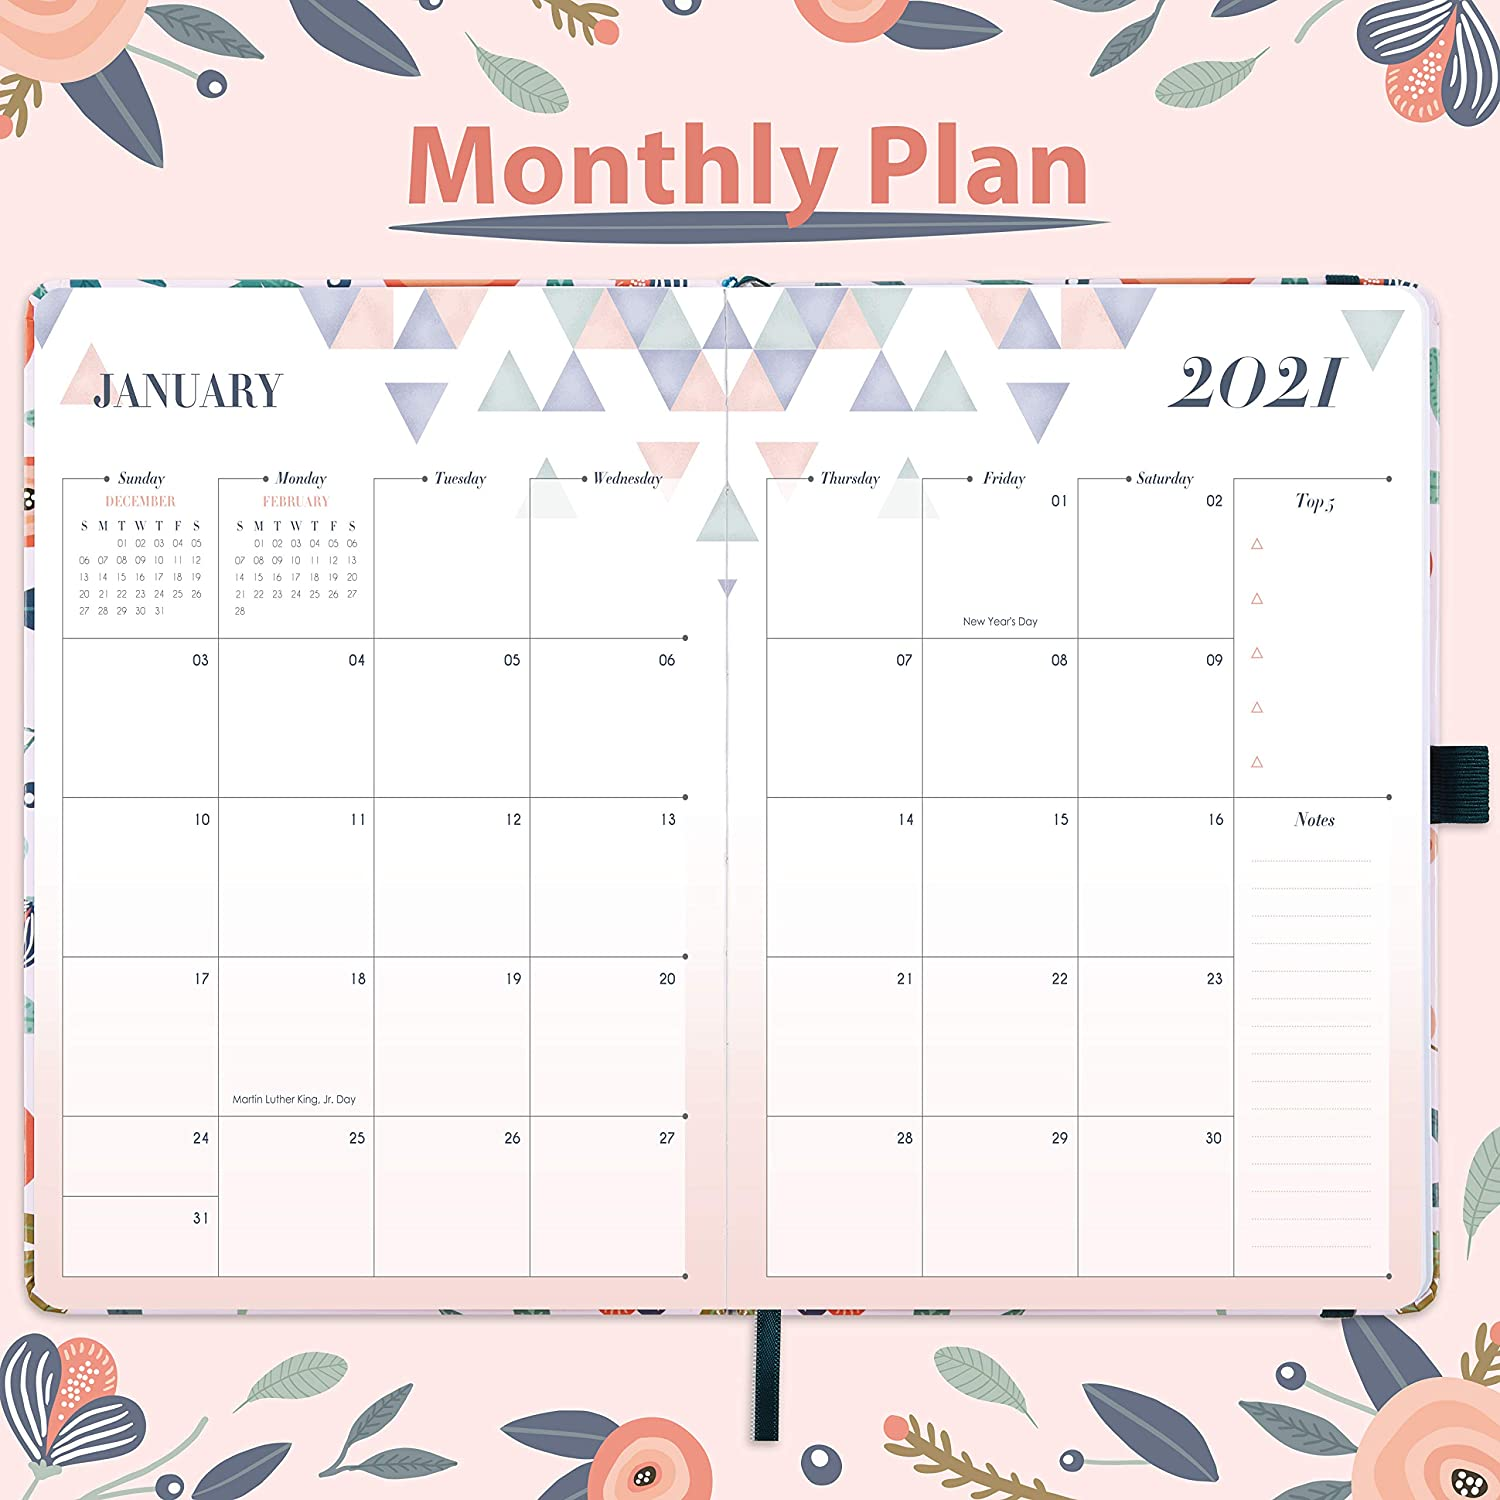 Eono by Monthly Tabs Perfect Diary for Your Daily Planning Pen Loop and Back Pocket Monthly /& Weekly Diary with Hardcover Diary 2021 21.3 x 14.7 x 1.6 cm A5 Week to View Planner